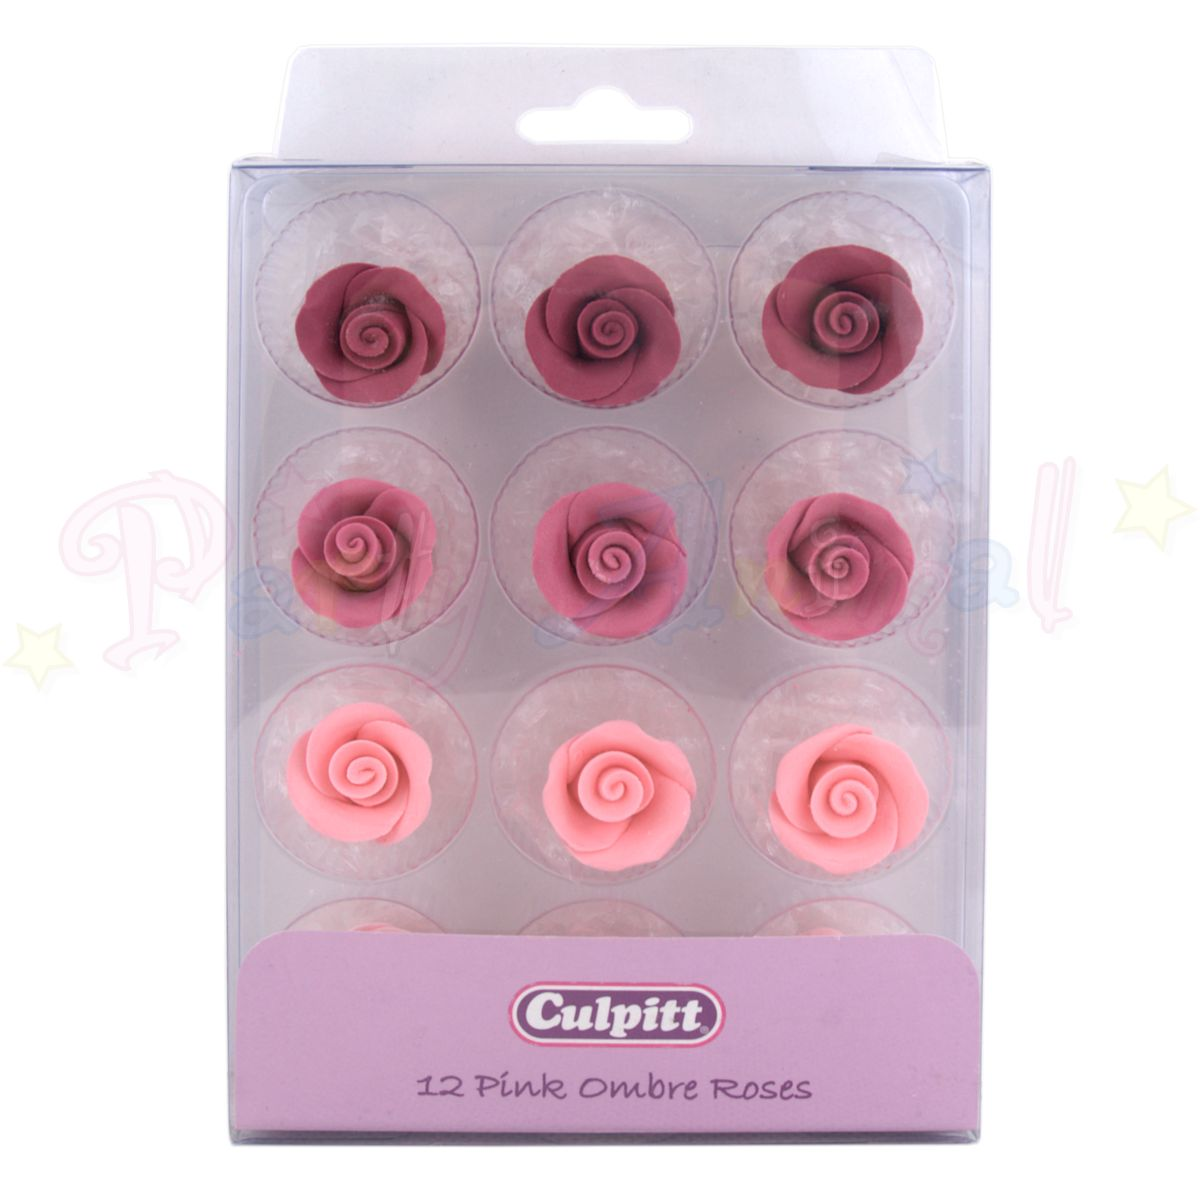 Culpitt -12 Pink Ombre Edible Rose Toppers